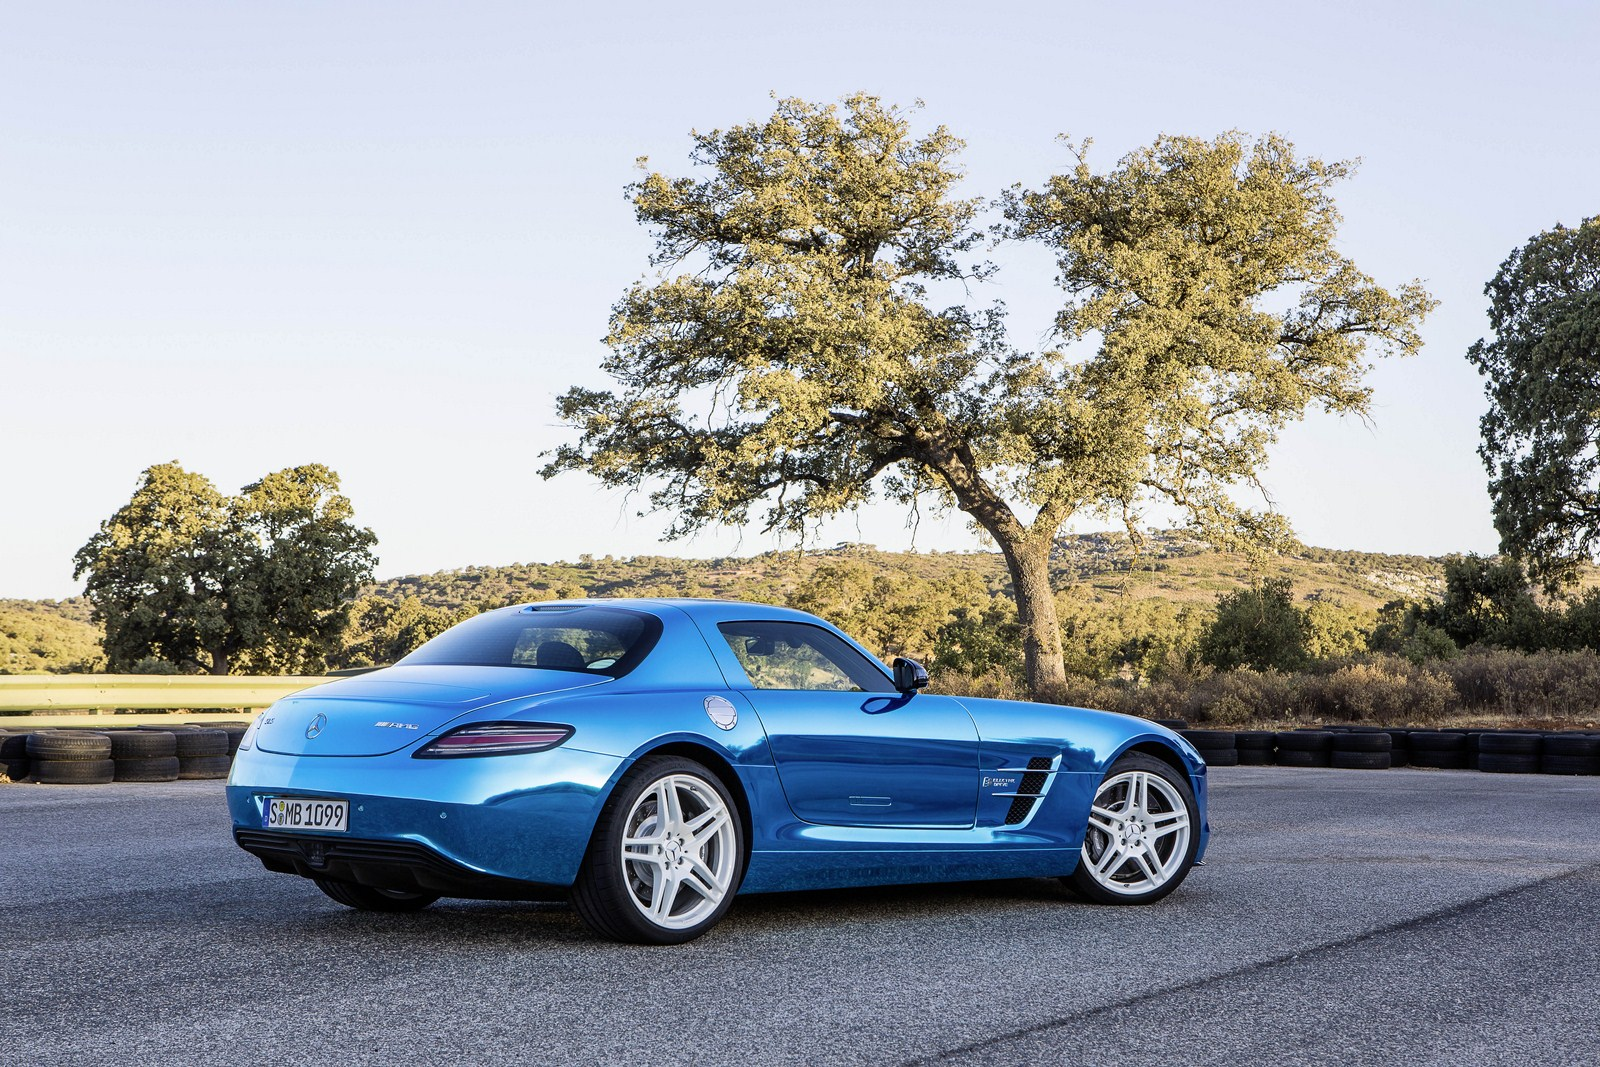 http://www.autoblog.gr/wp-content/gallery/mercedes-sls-amg-electric-drive/mercedes-sls-amg-electric-drive-4_0.jpg